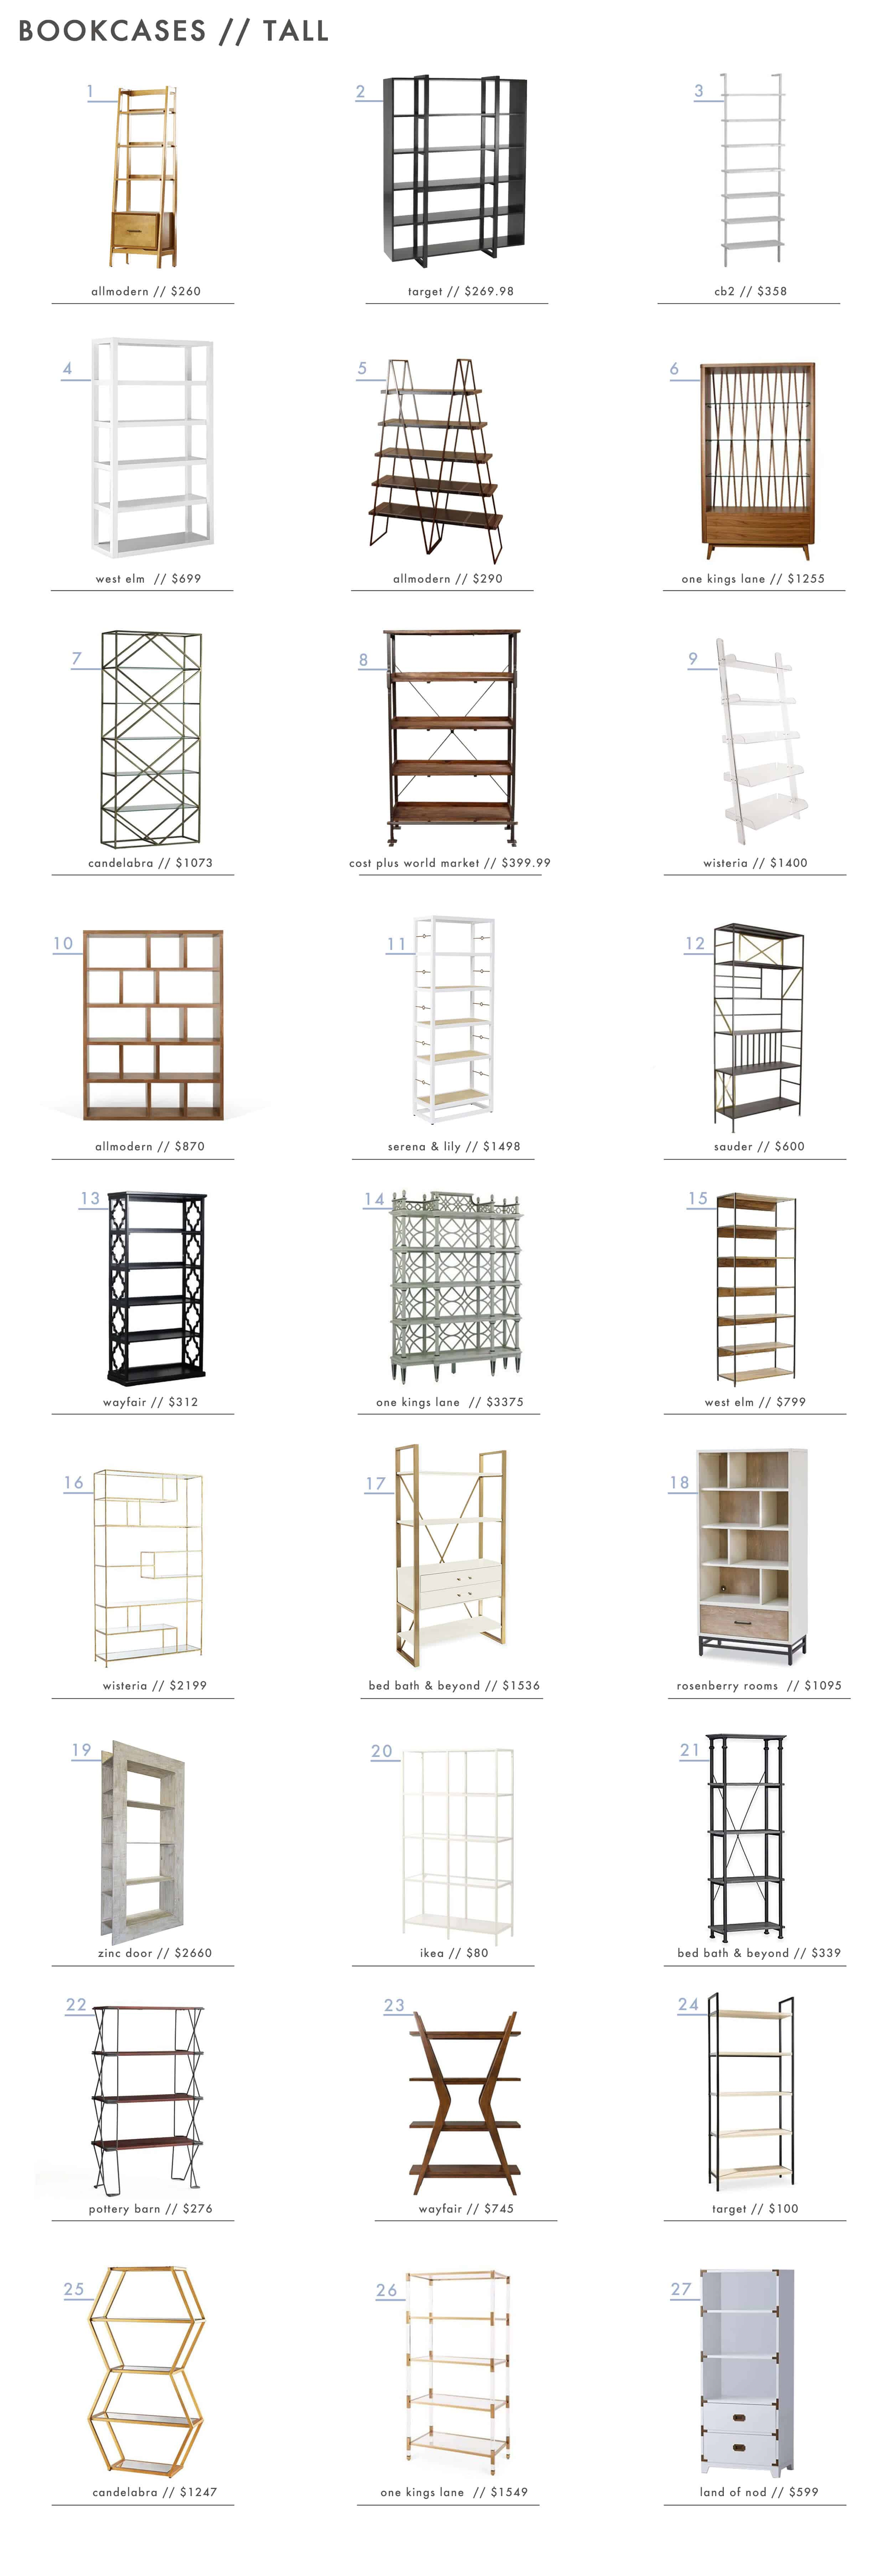 Emily Henderson_Bookcases_Shelving_Organization_Tall_Roundup